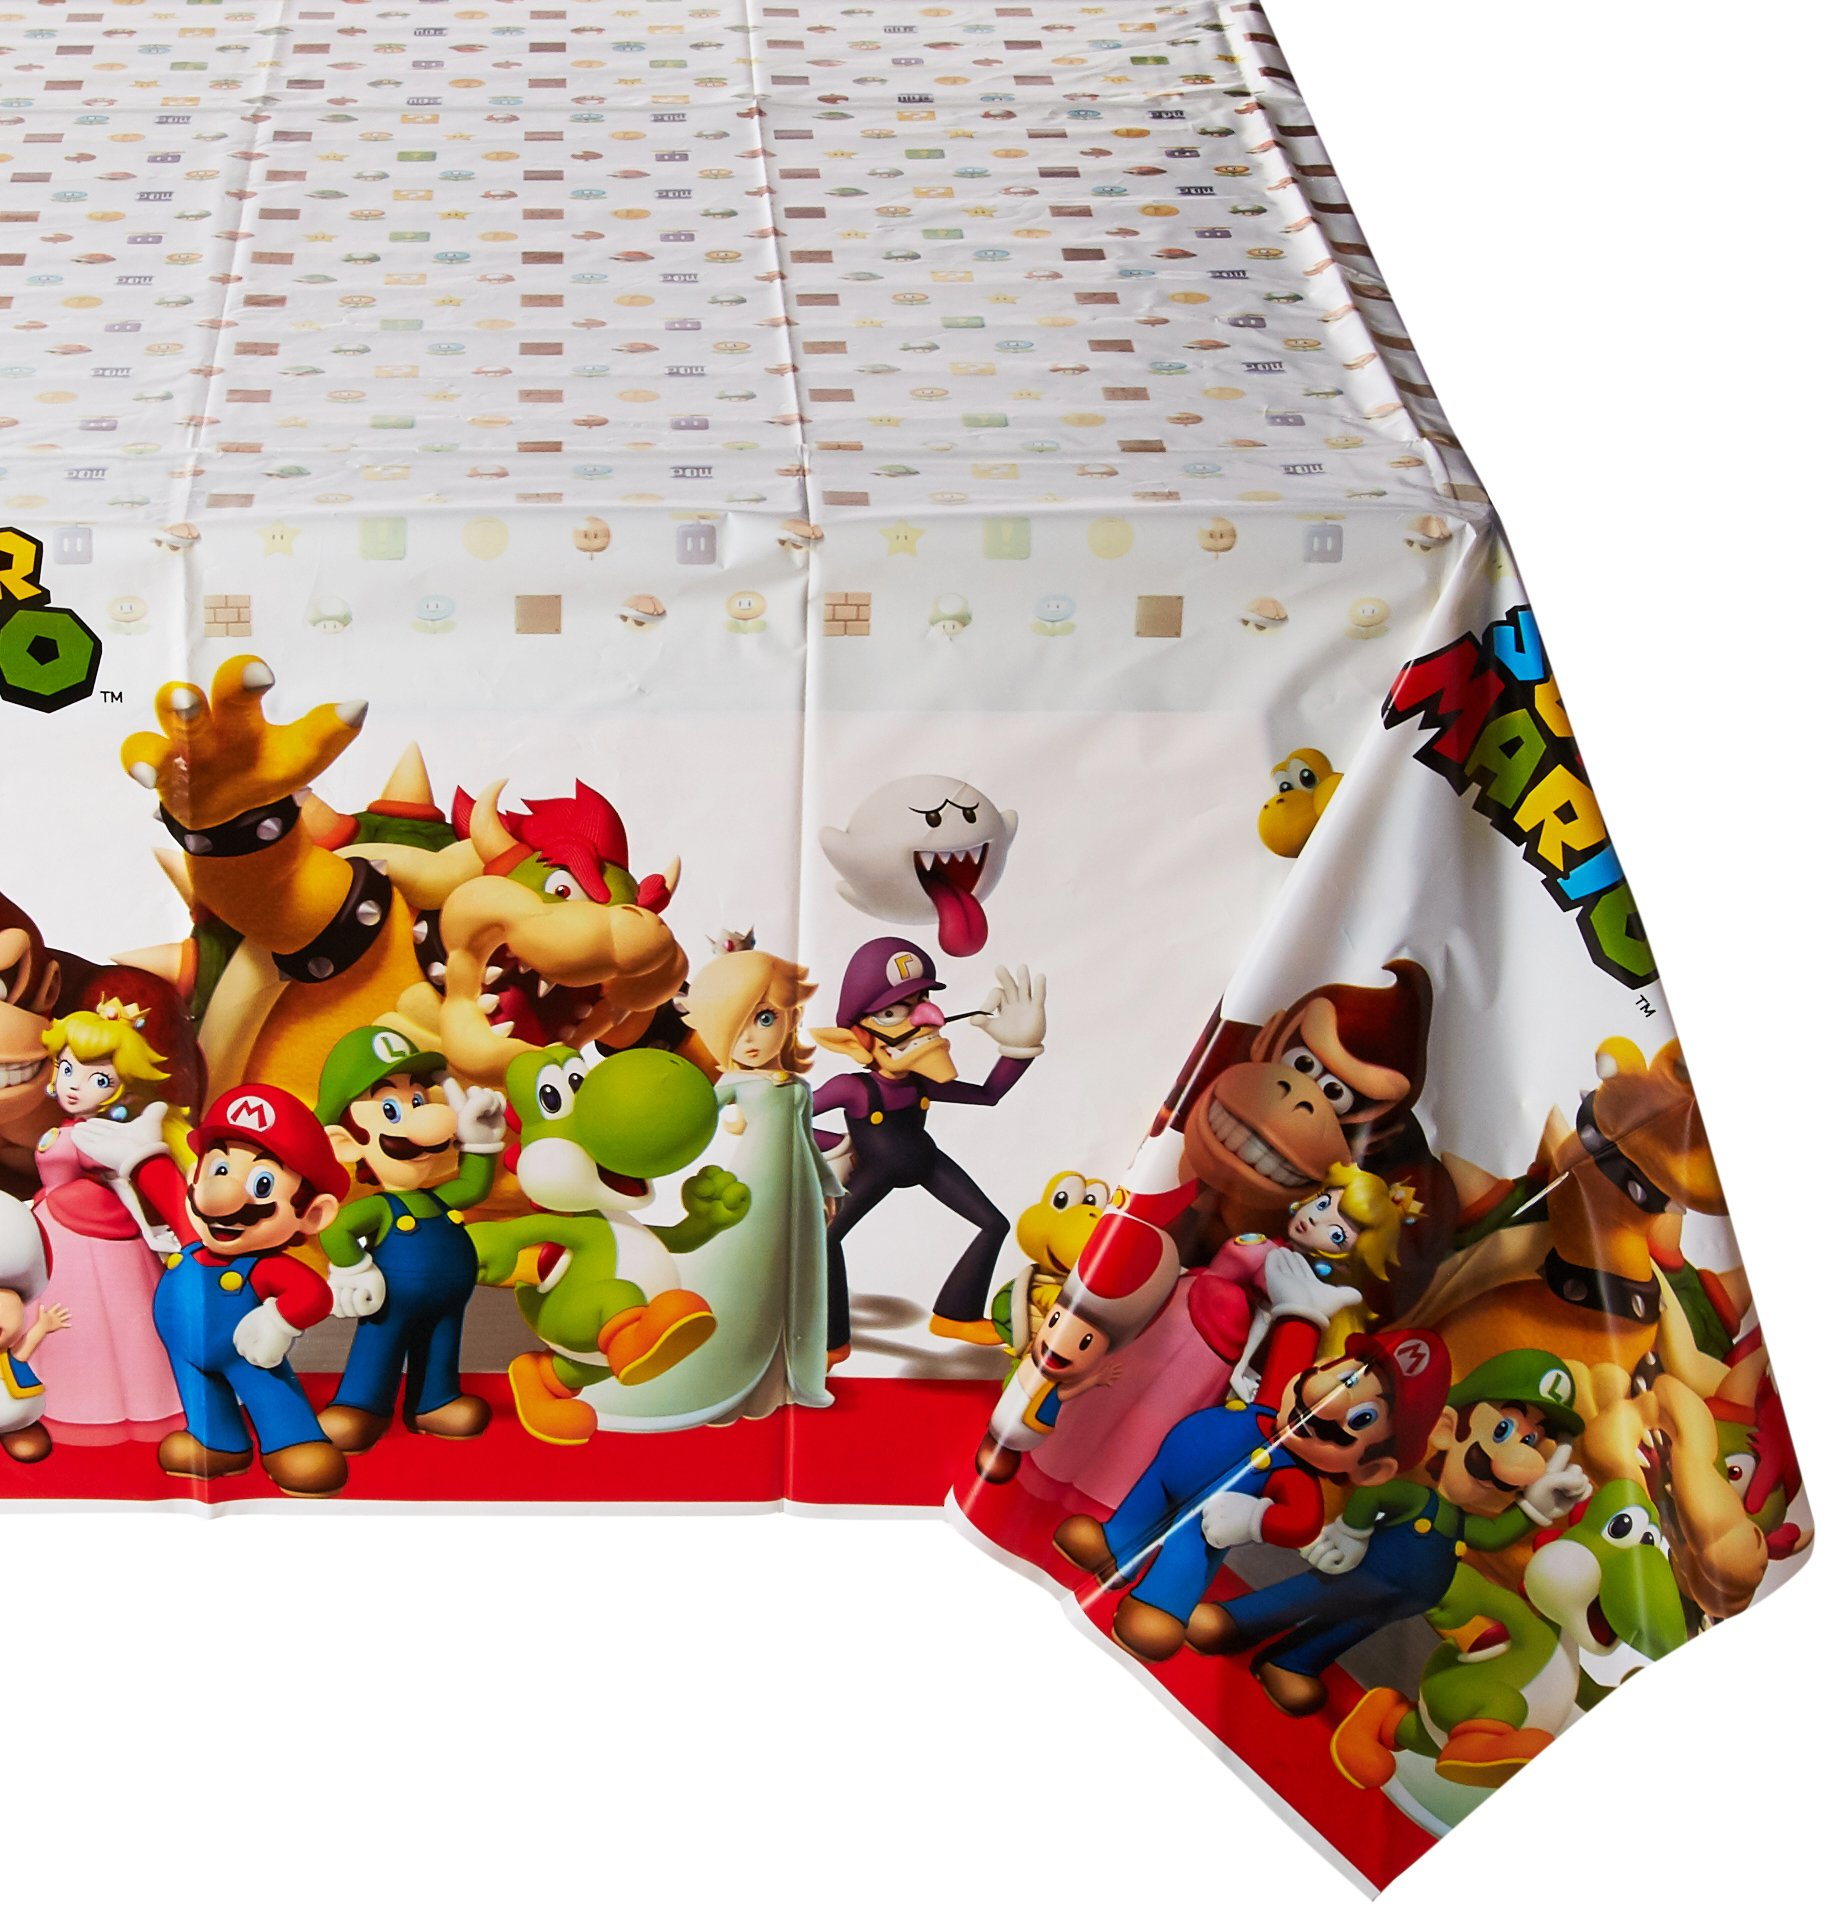 amscan Super Mario Brothers Plastic Table Cover, Party Favor, 6 Ct.